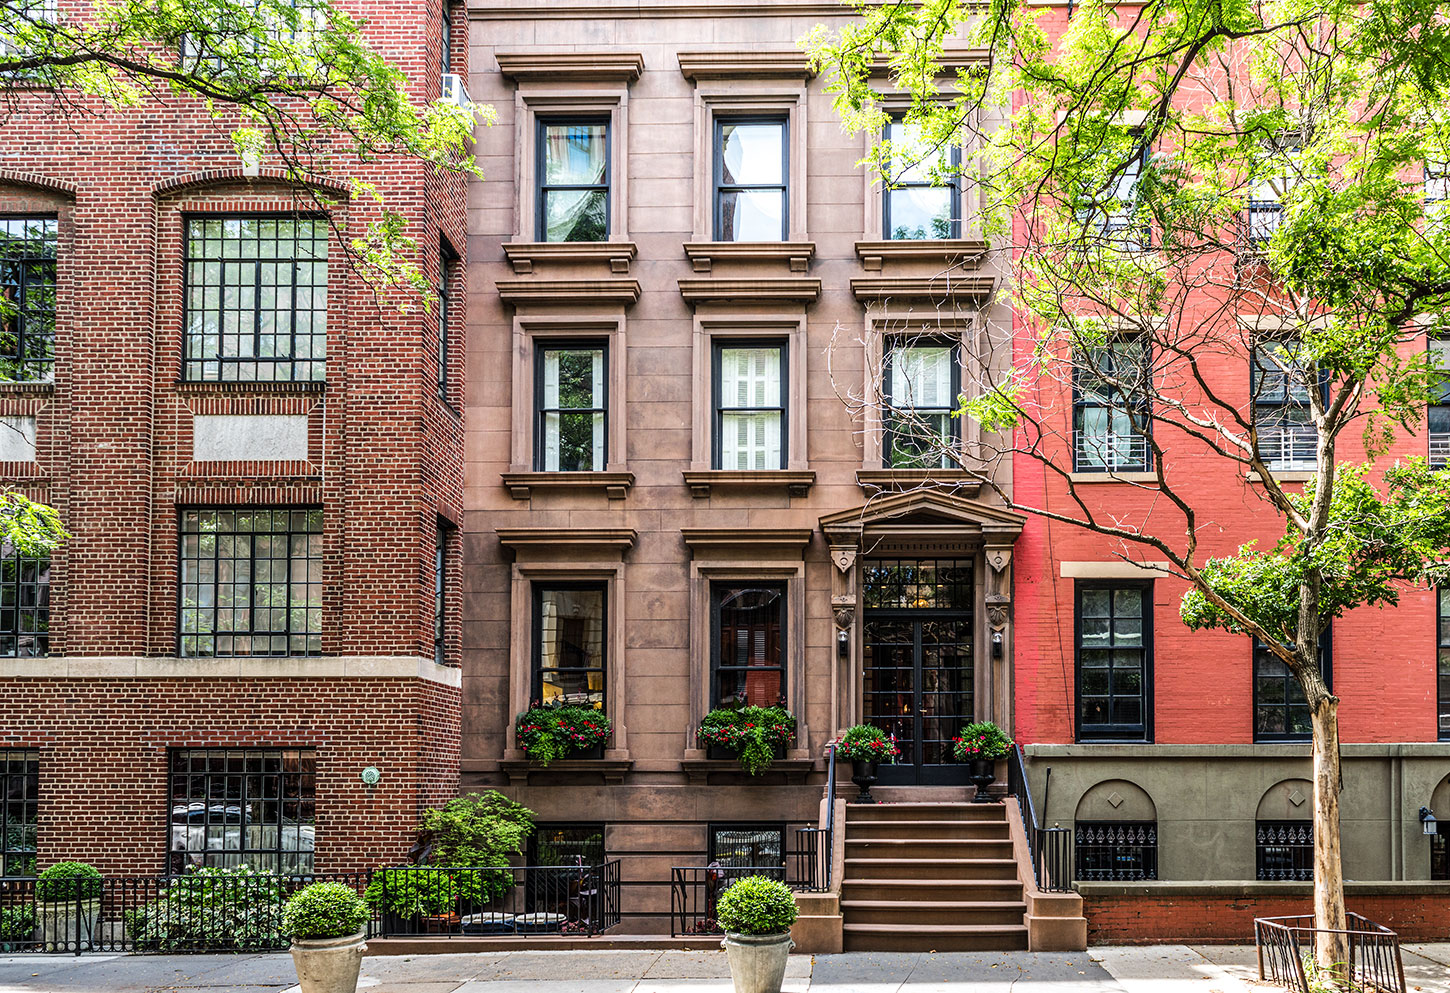 Rowhouses in Brooklyn, NYC